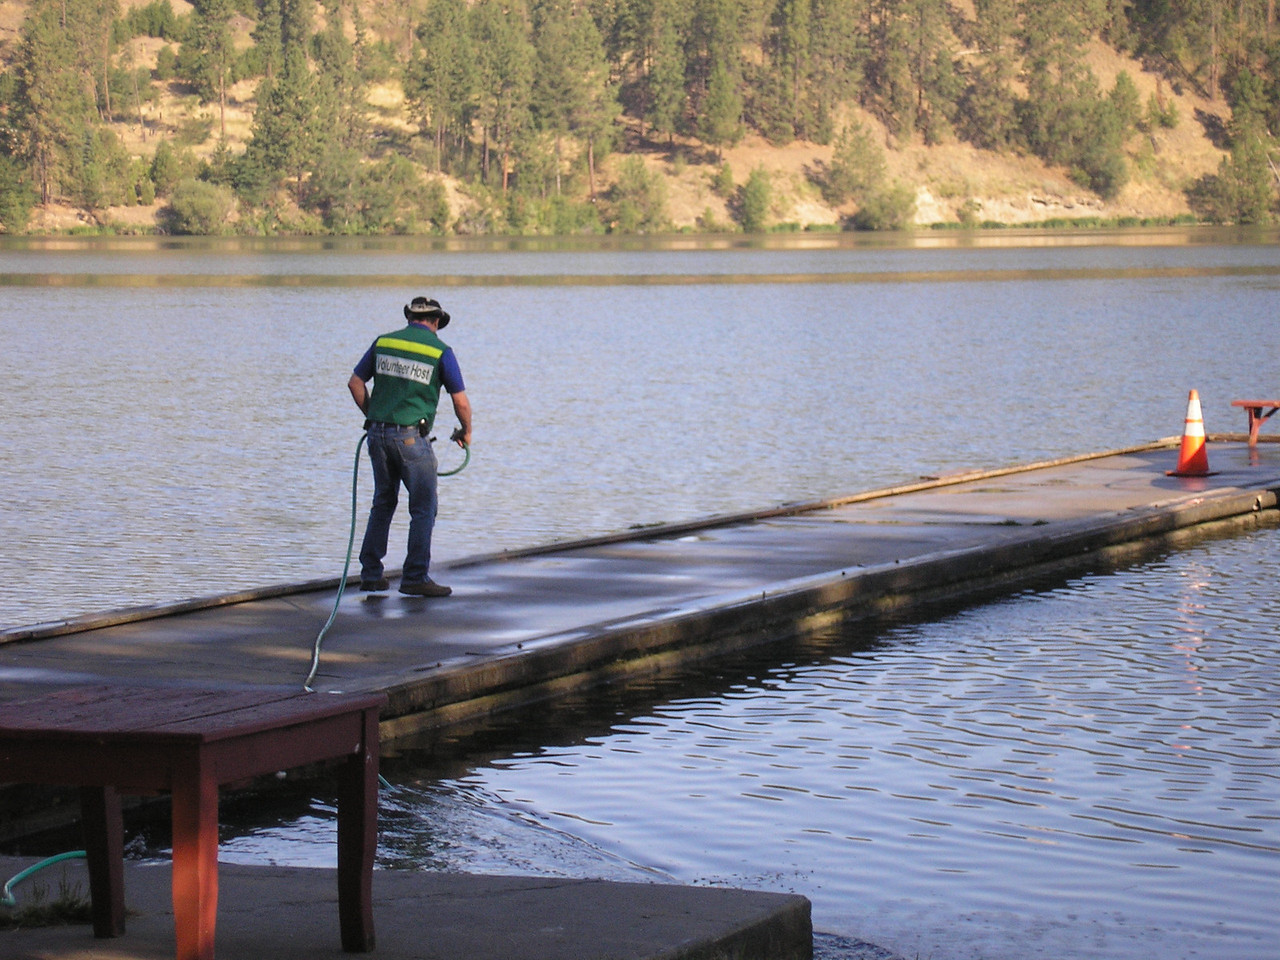 John on duty cleaning off the boat dock. The Ducks and Canadian Geese leave calling cards thet are messy.